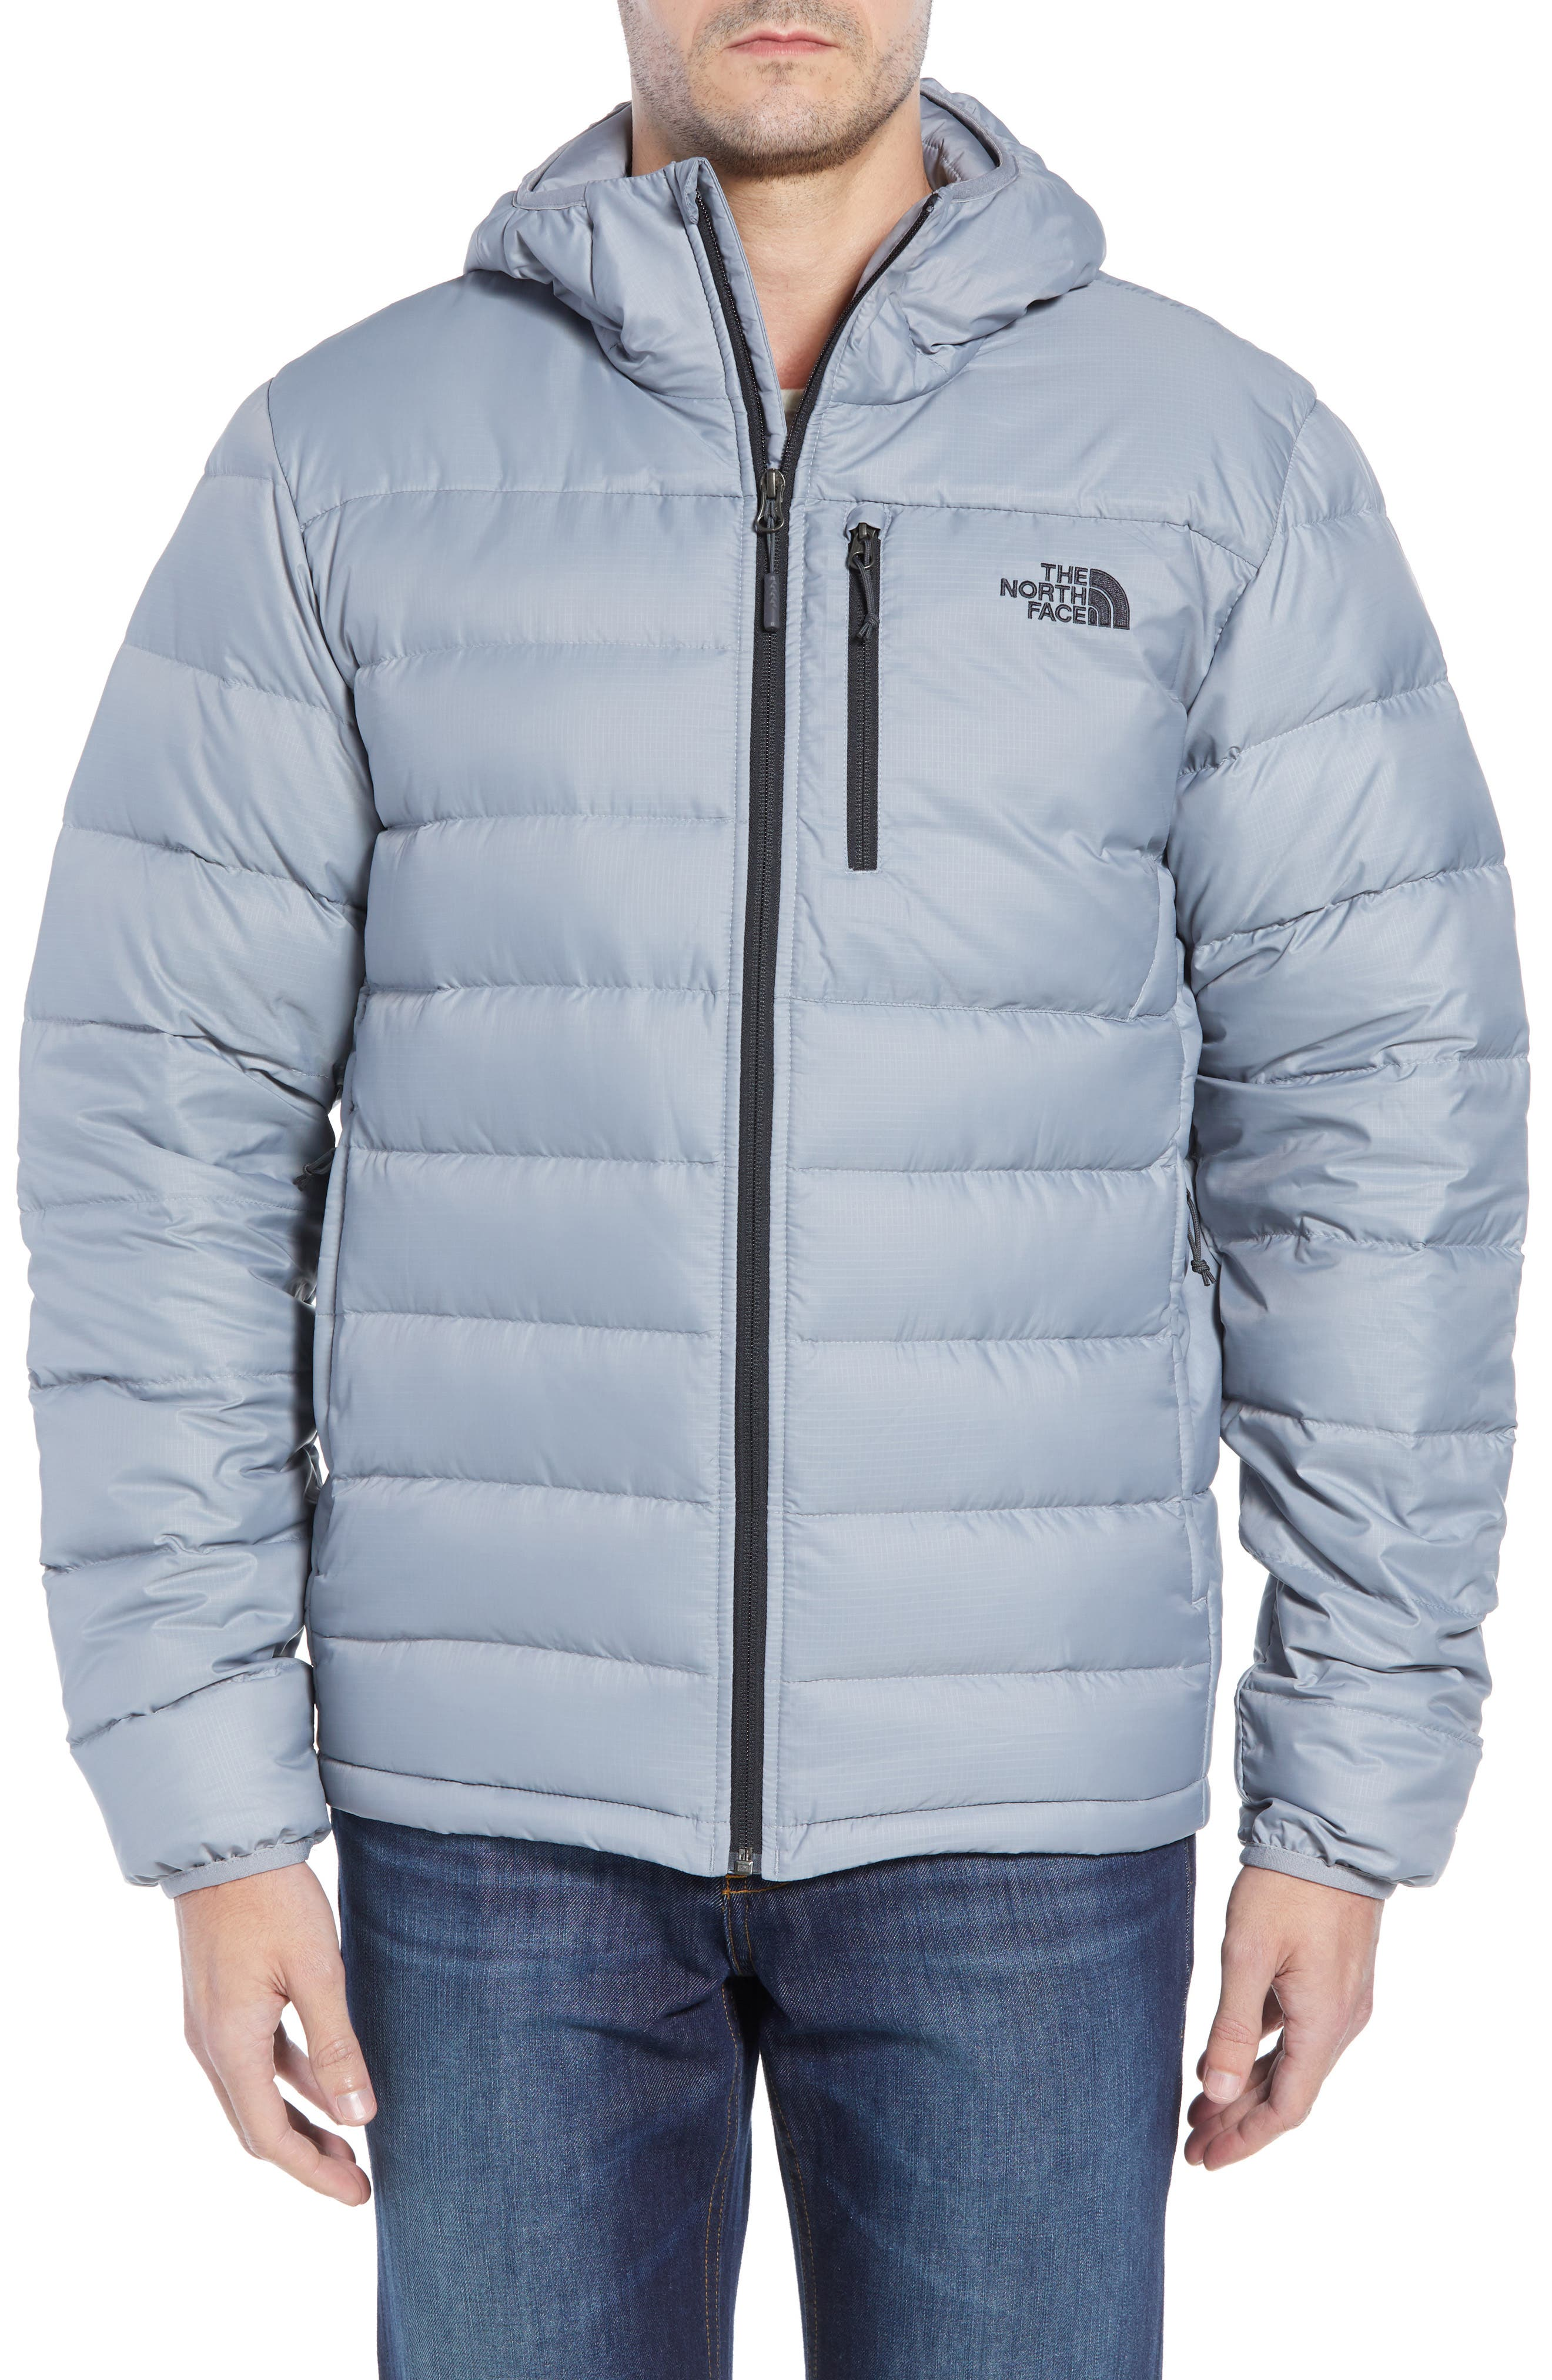 Aconcagua Down Hooded Jacket,                             Alternate thumbnail 4, color,                             MID GREY